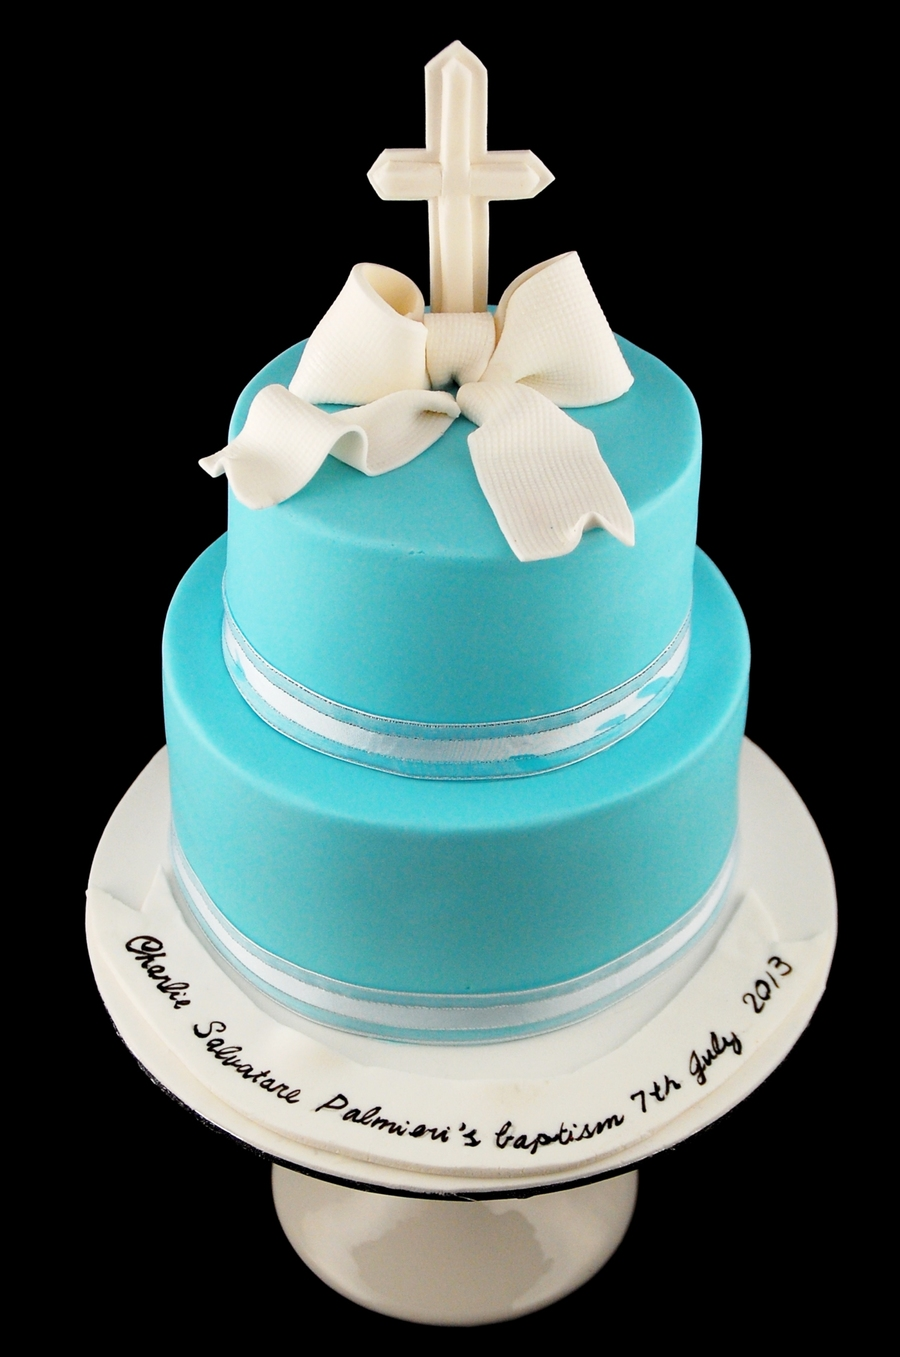 Cake Decorations For Christening Cake : Simple Christening Baptism Cake For A Baby Boy ...